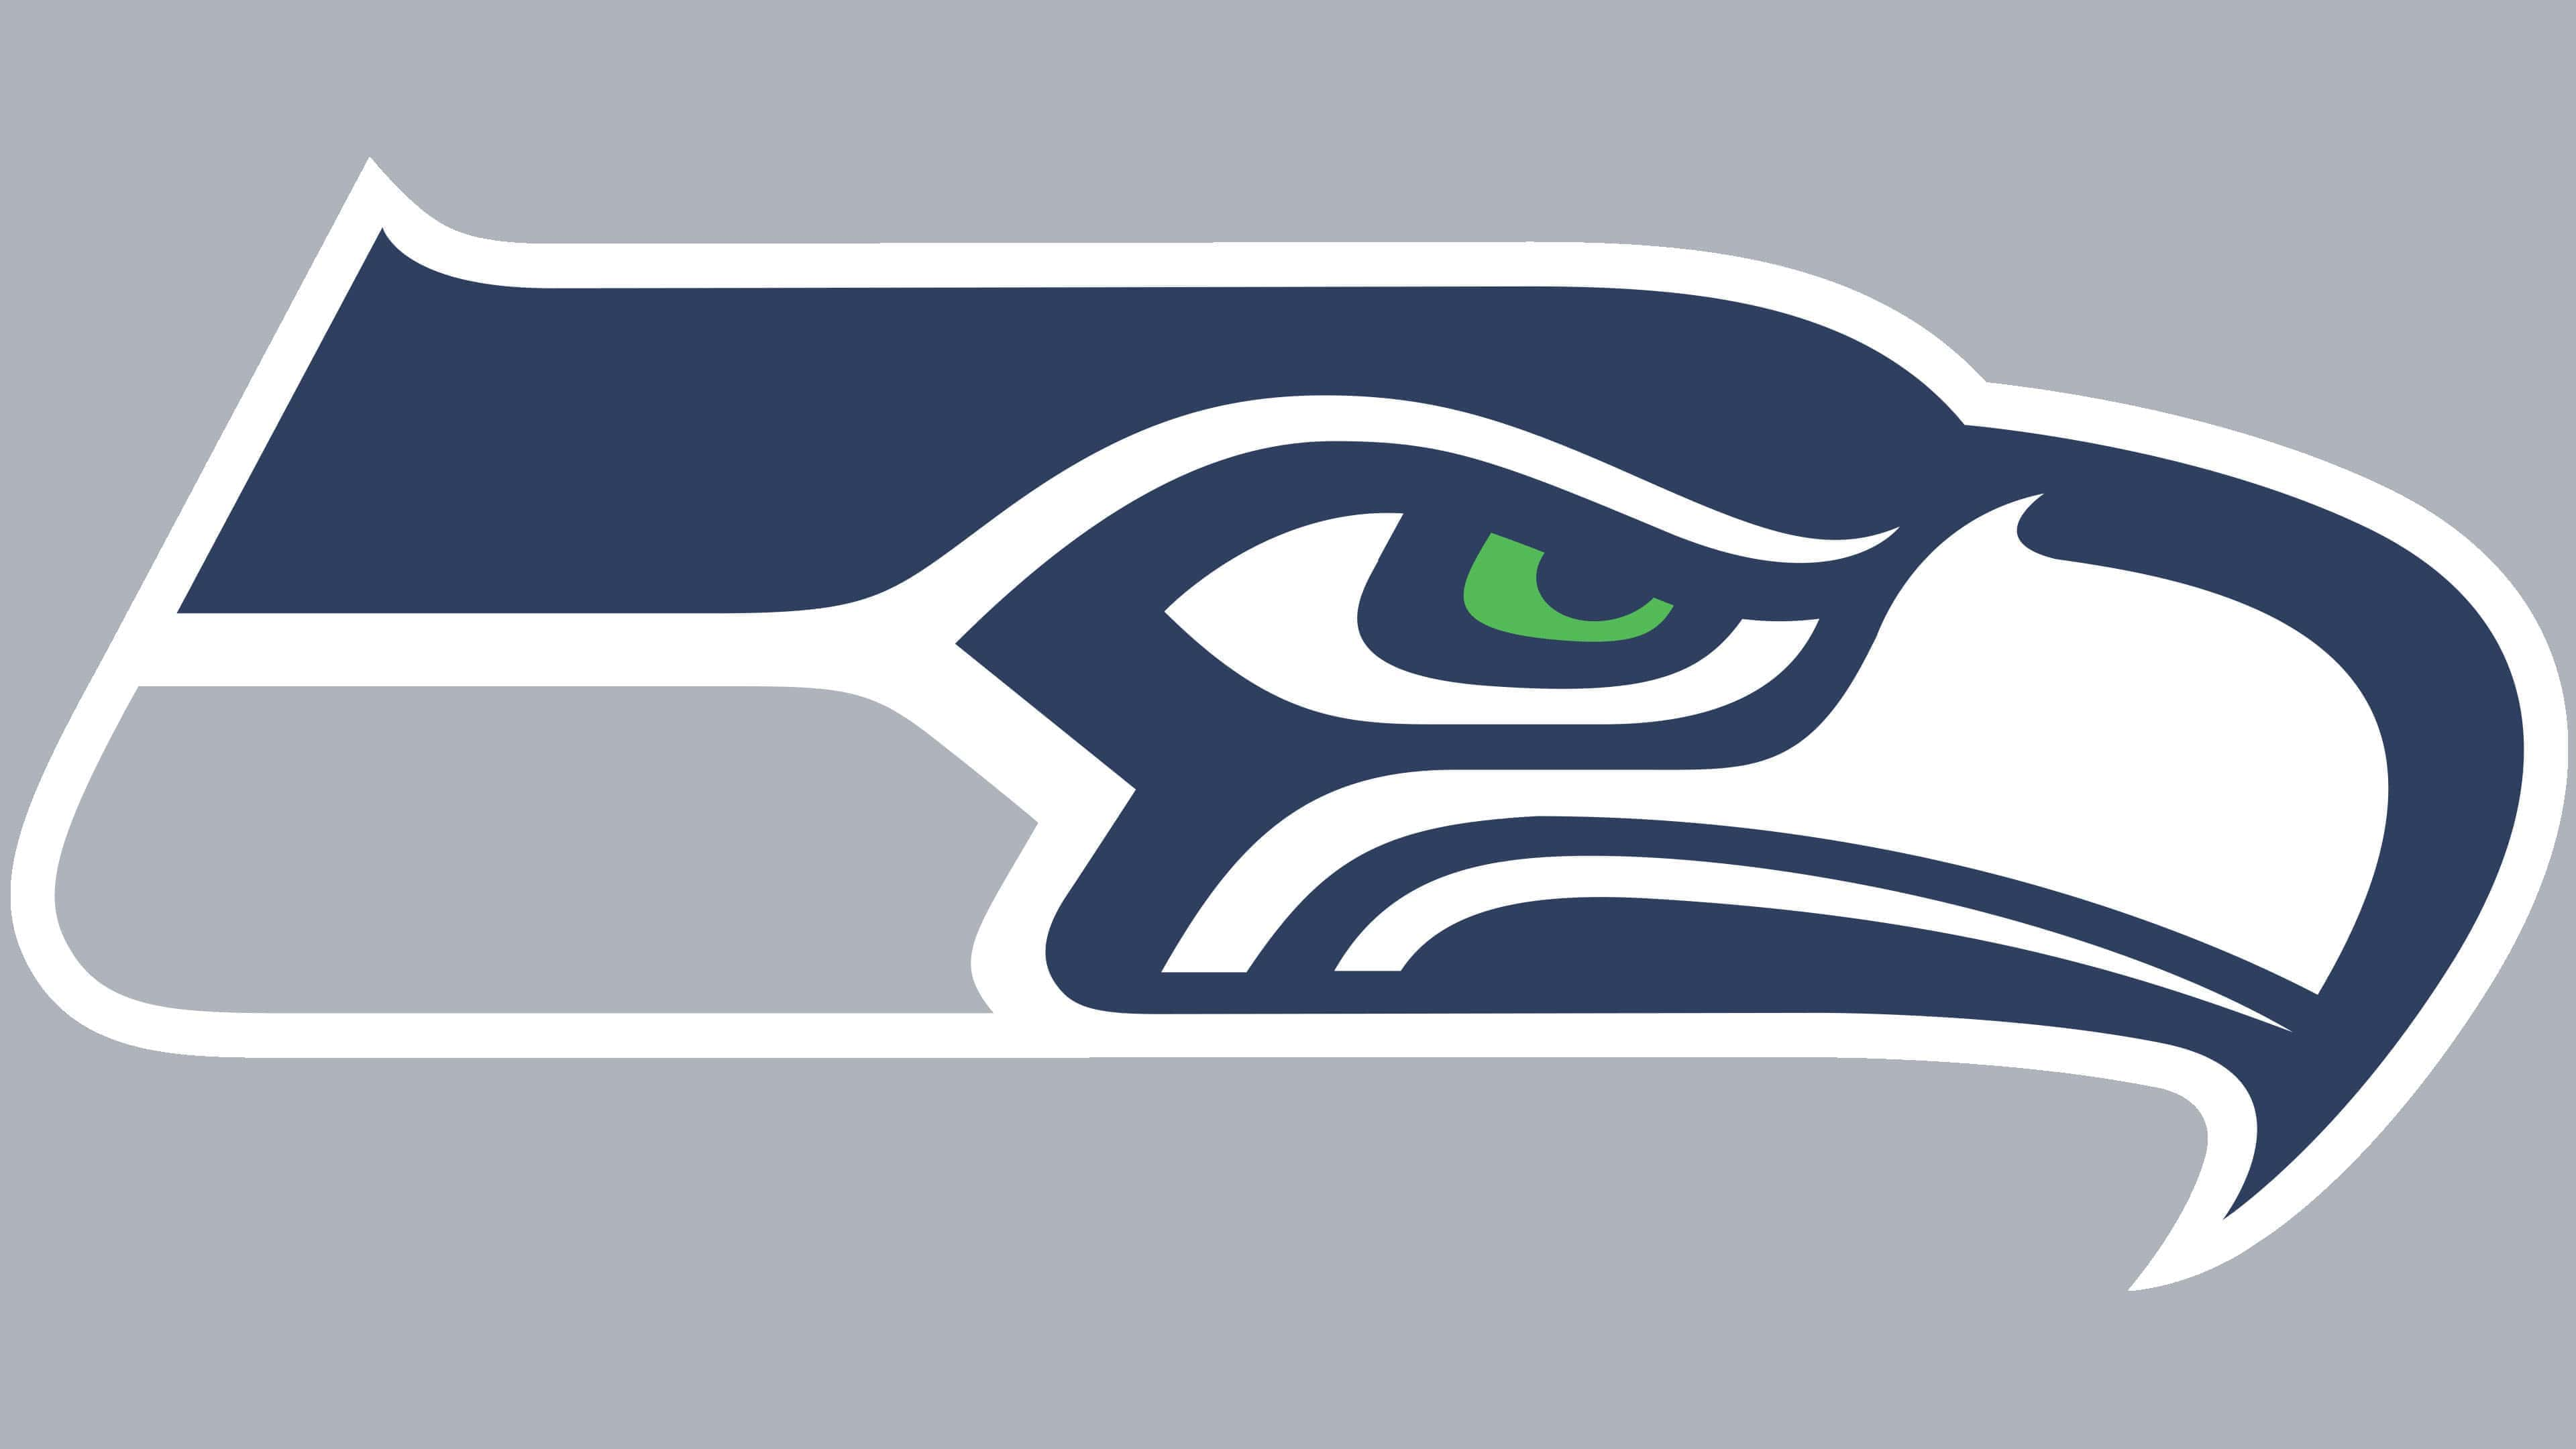 Seattle Seahawks Logo The Most Famous Brands And Company Logos In The World